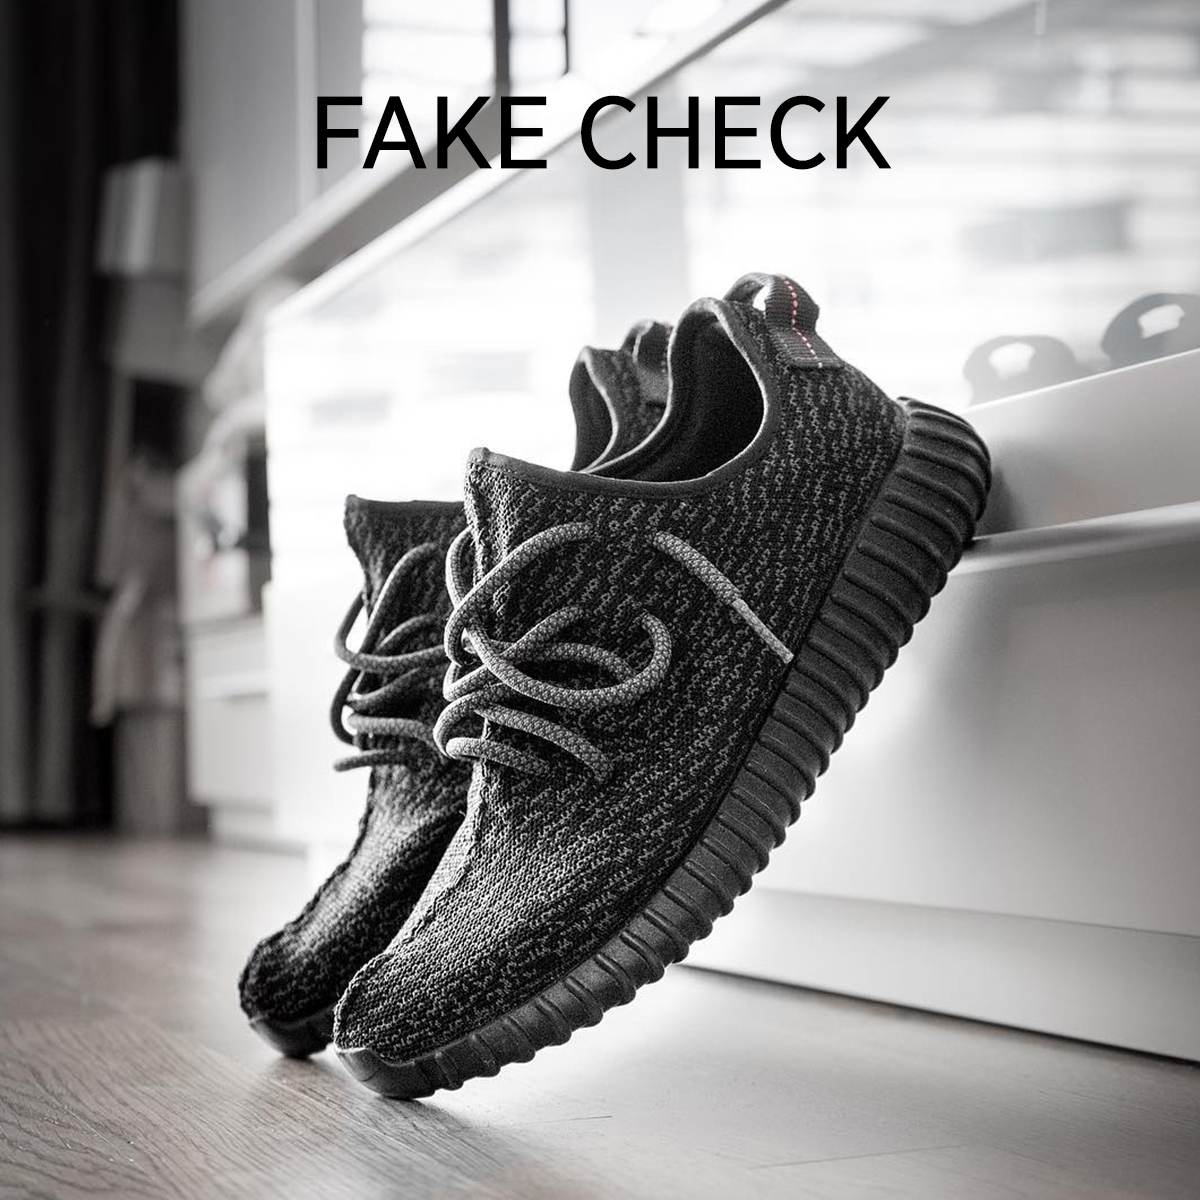 d63c4912e Authentic adidas YEEZY BOOST 350 Pirate Black - Klekt Fake Check